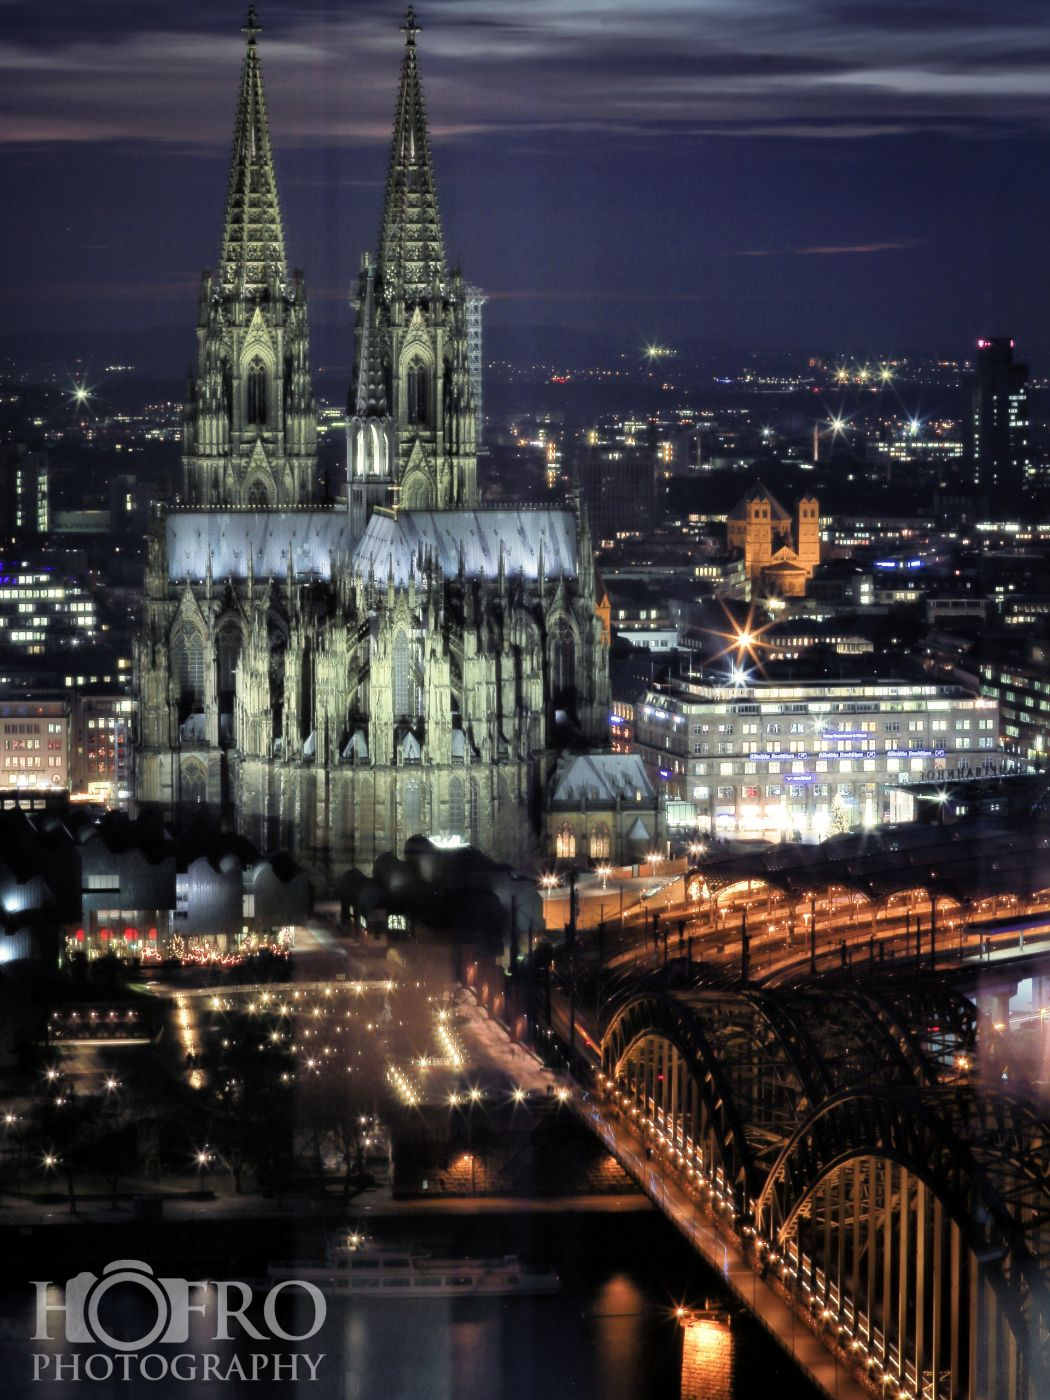 NightView of Cologne, Germany